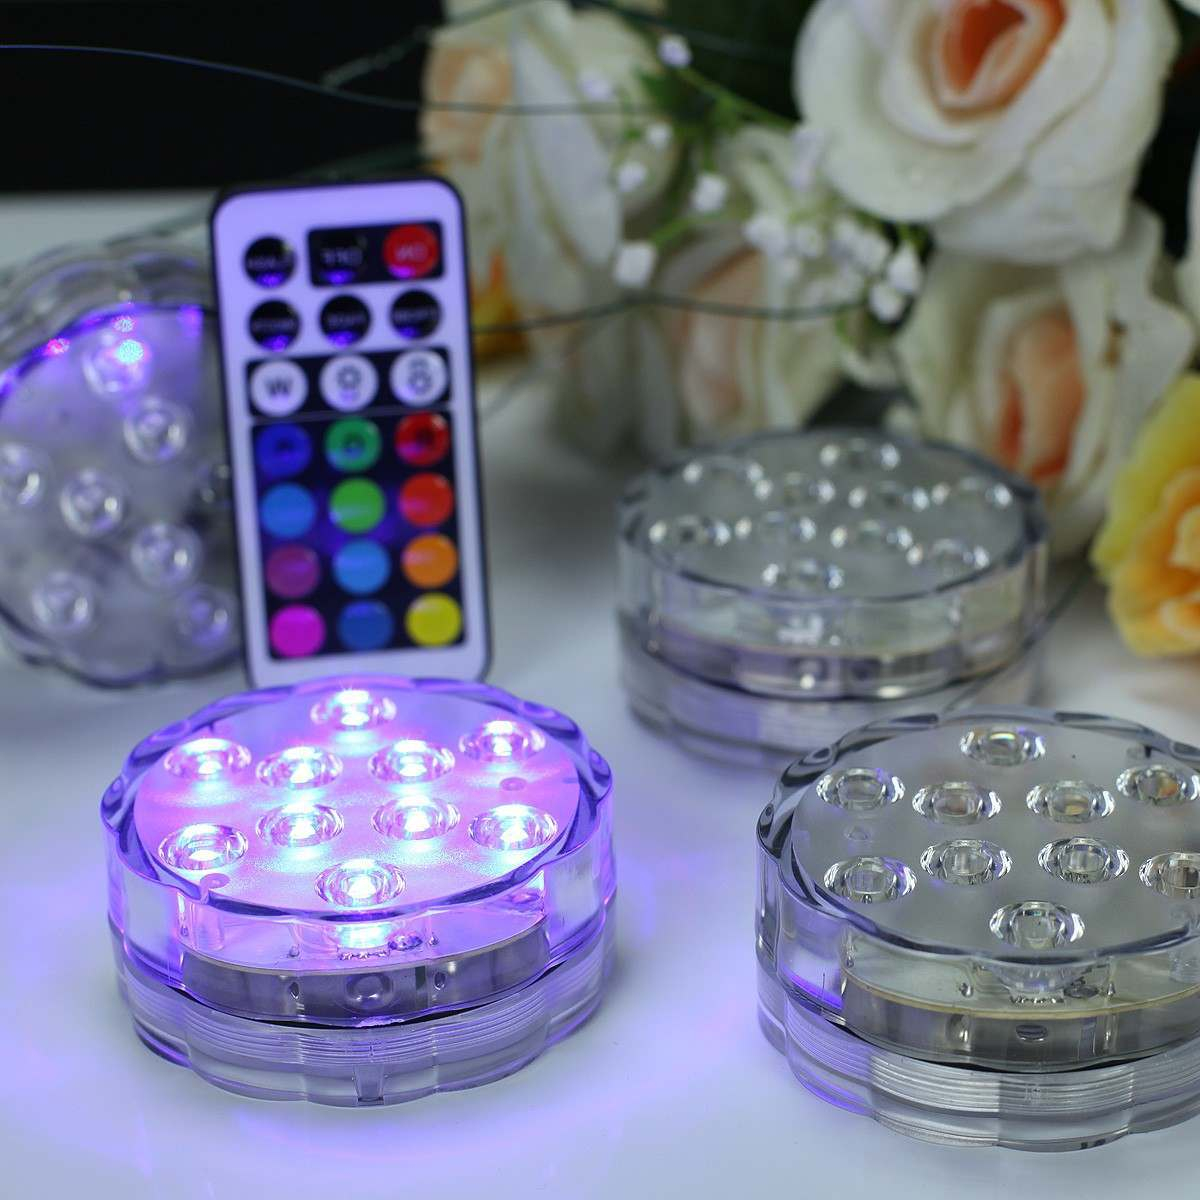 4 Colour Changing Submersible Vase Up Lighters with Remote Control